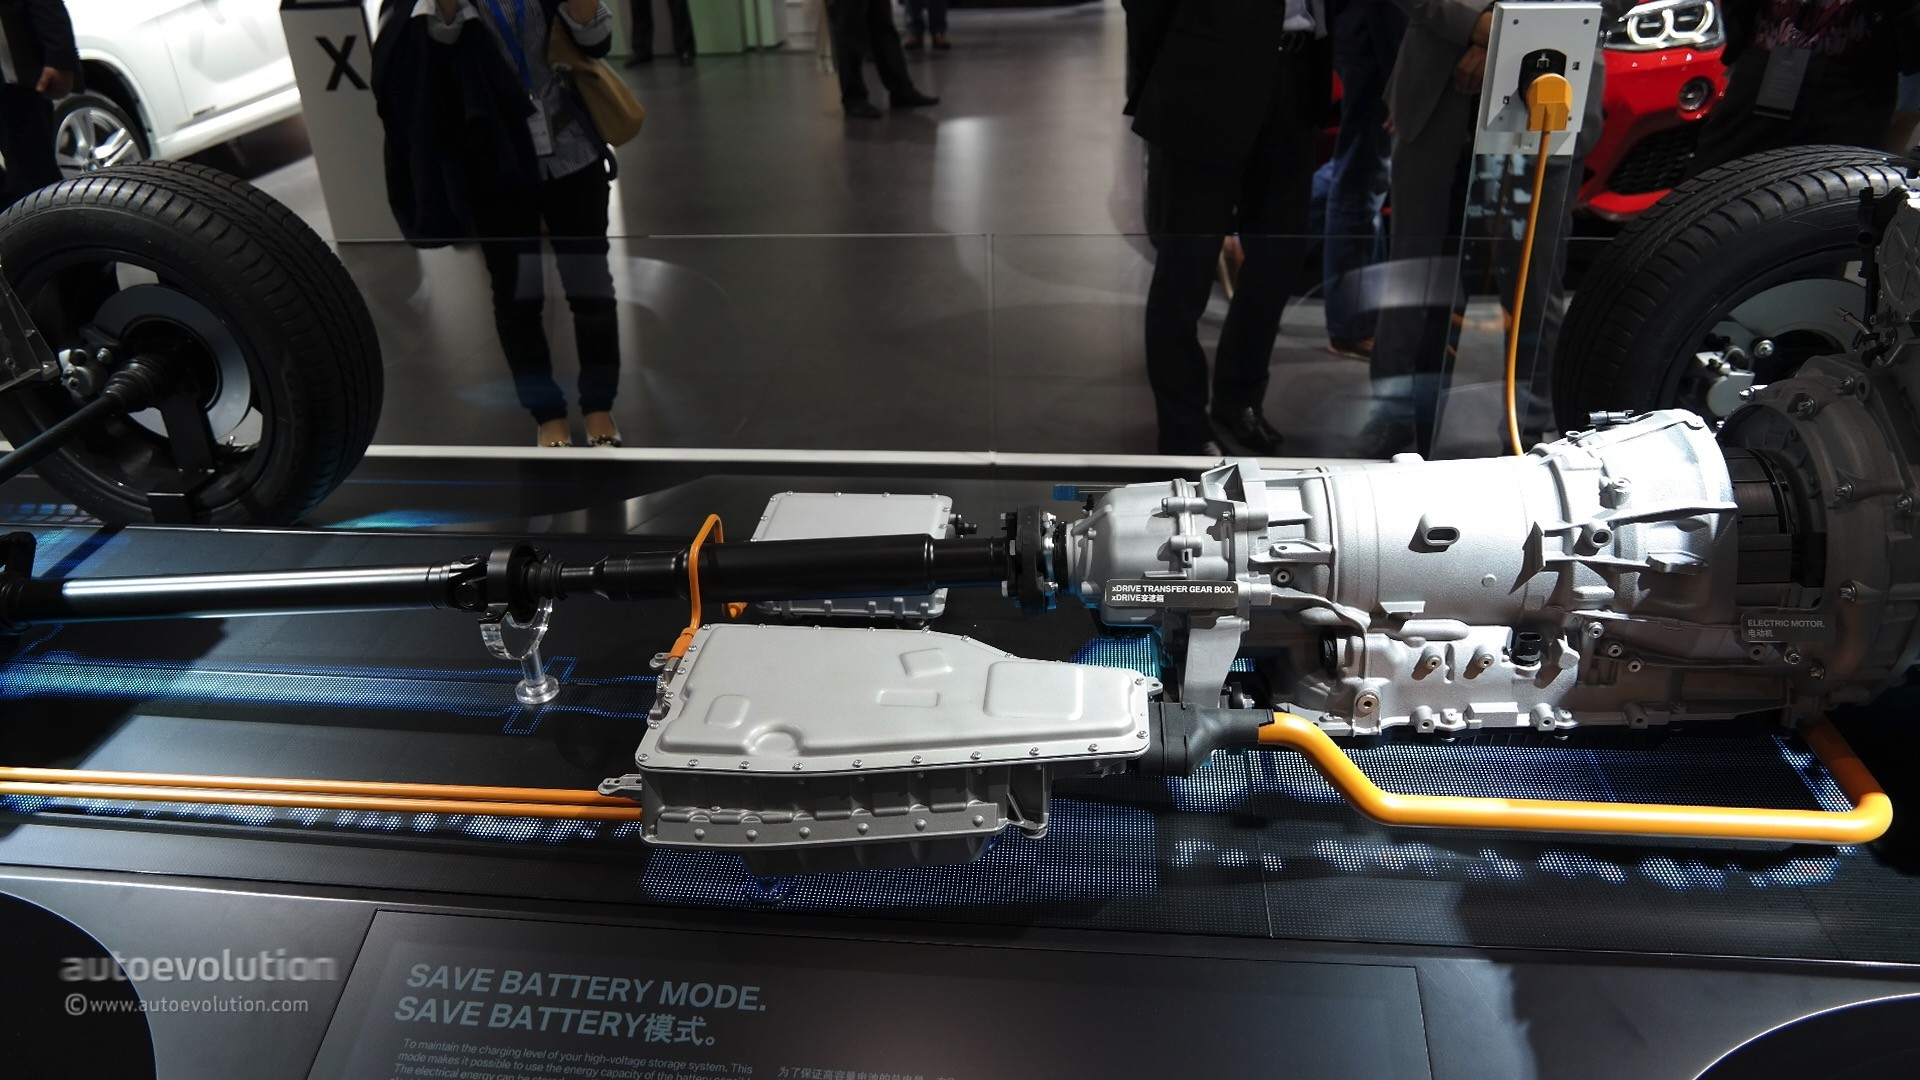 Bmw Exposed The Powertrain Of The New X5 Xdrive40e Plug In